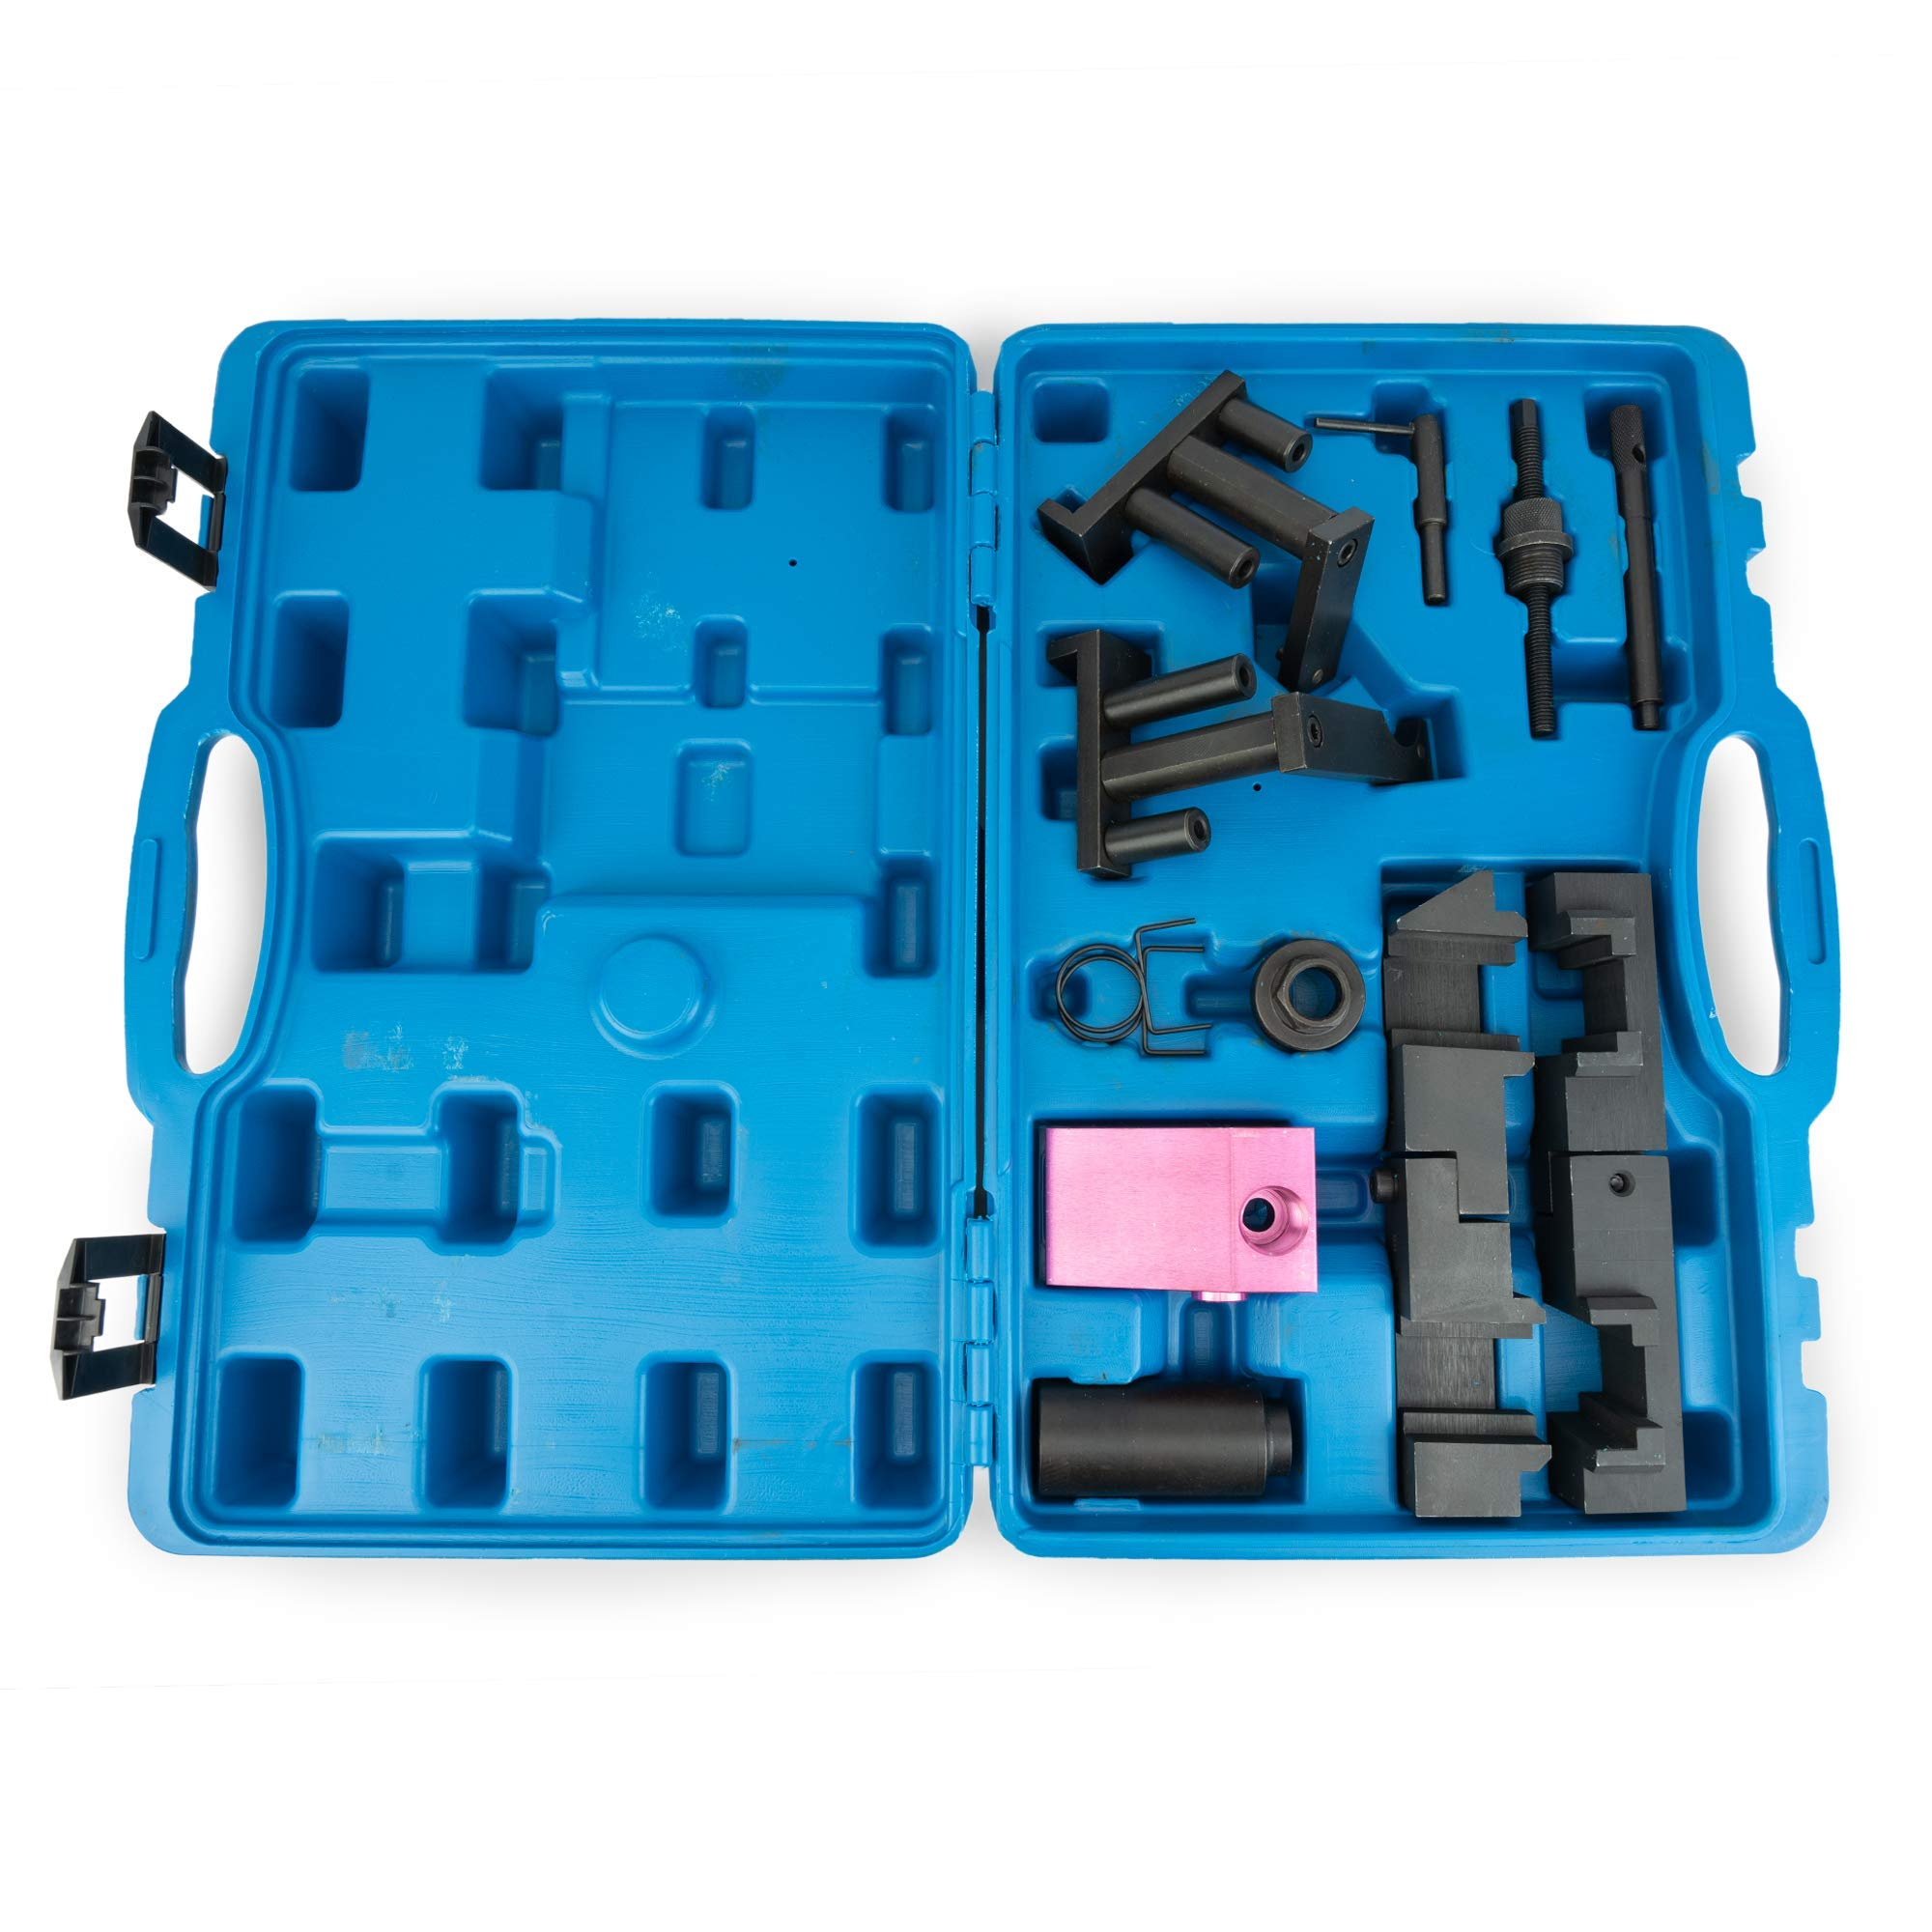 Variable Valve Timing Locking Tool Kit - Compatible With BMW M60, M62 Engines - VANOS Electromagnetic Valve Camshaft Alignment - Pin, Tensioner, Socket, Trestle, Fixture, Locking Tool & Springs by Delray Auto Parts (Image #5)